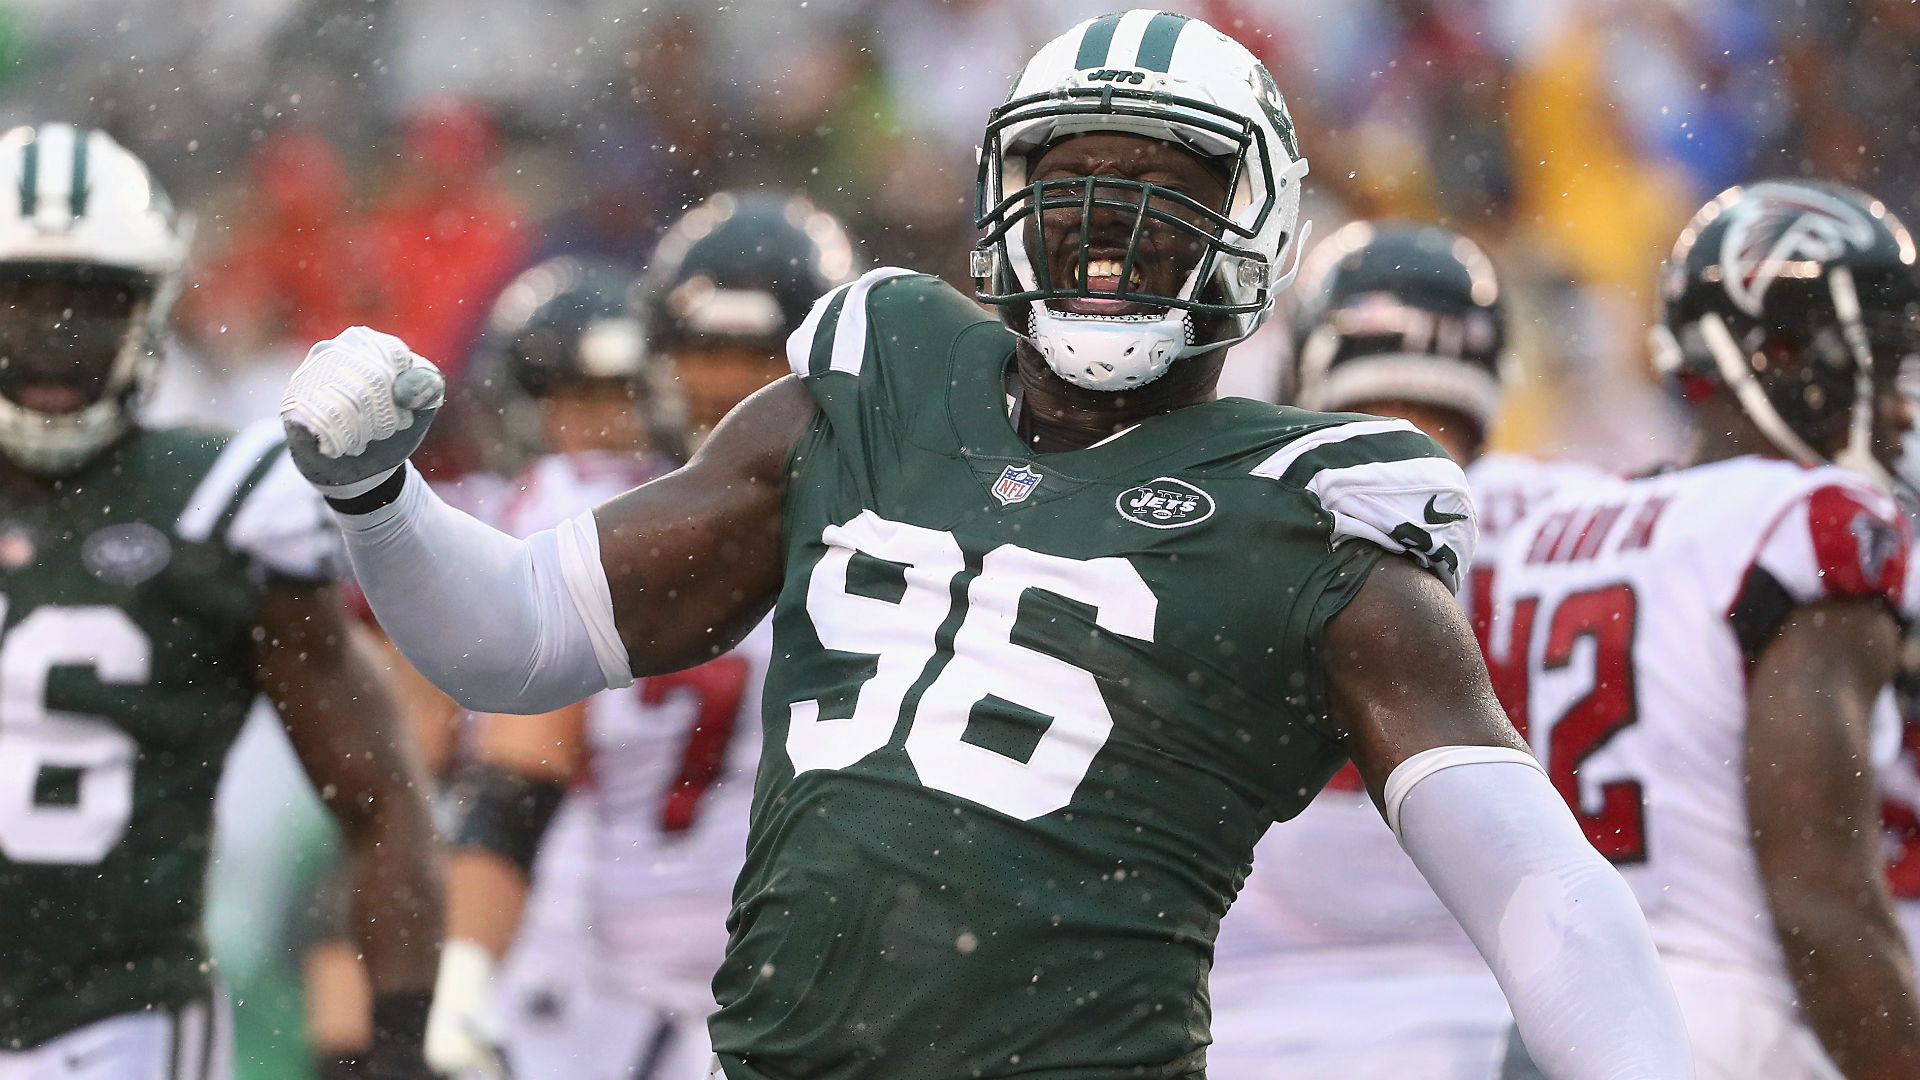 Mo Wilkerson not traveling with Jets due to tardiness